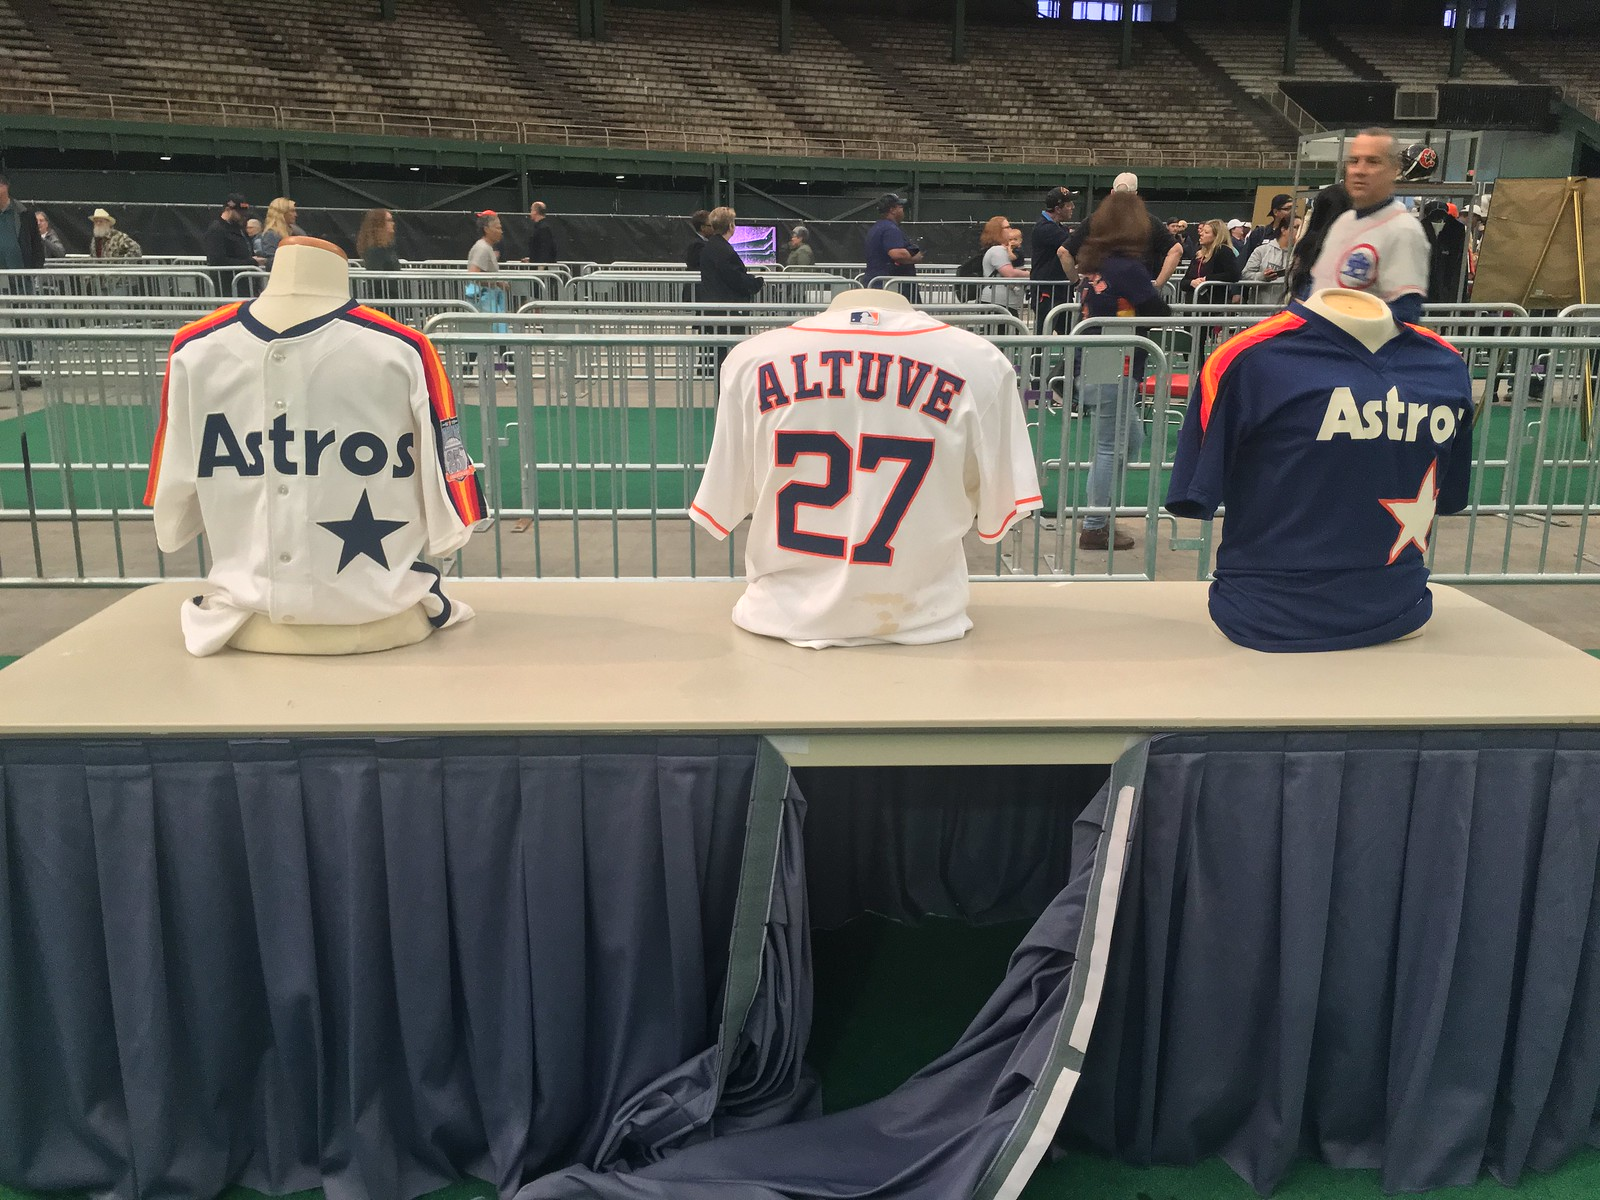 f3b903c47 Also along the route, Astros jerseys from throughout the team's history  filled the aisles. Former Astros fireballer J.R. Richard greeted fans as  they came ...